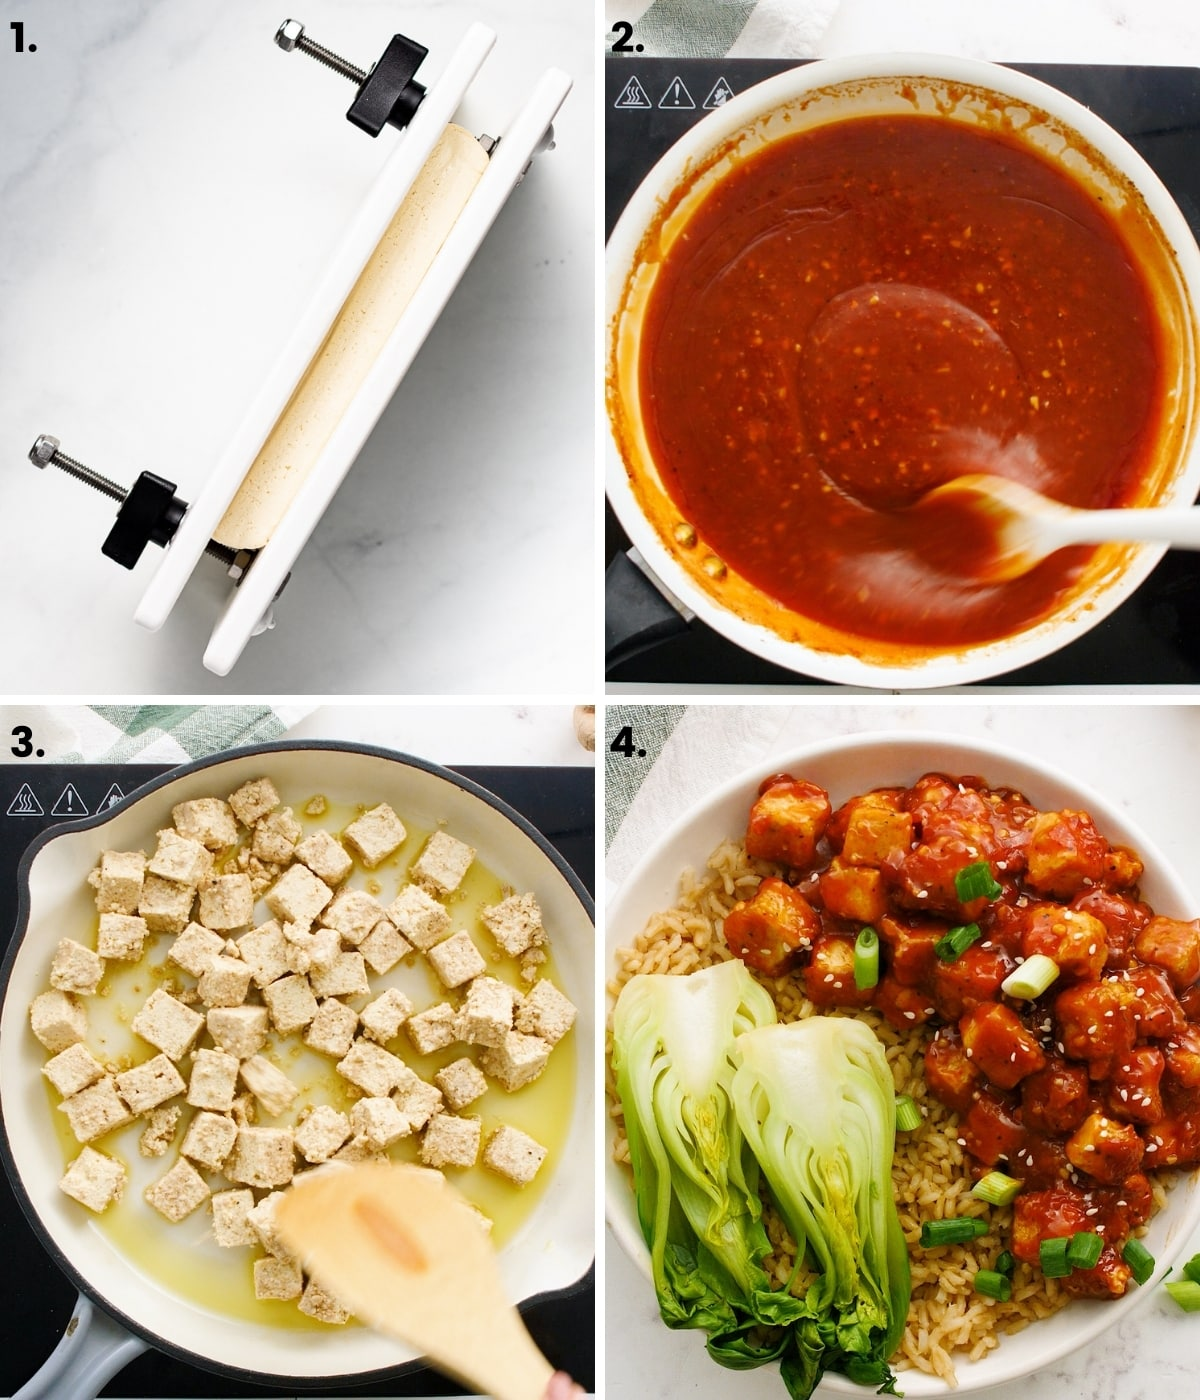 process photos showing how to make five spice tofu as per the written recipe